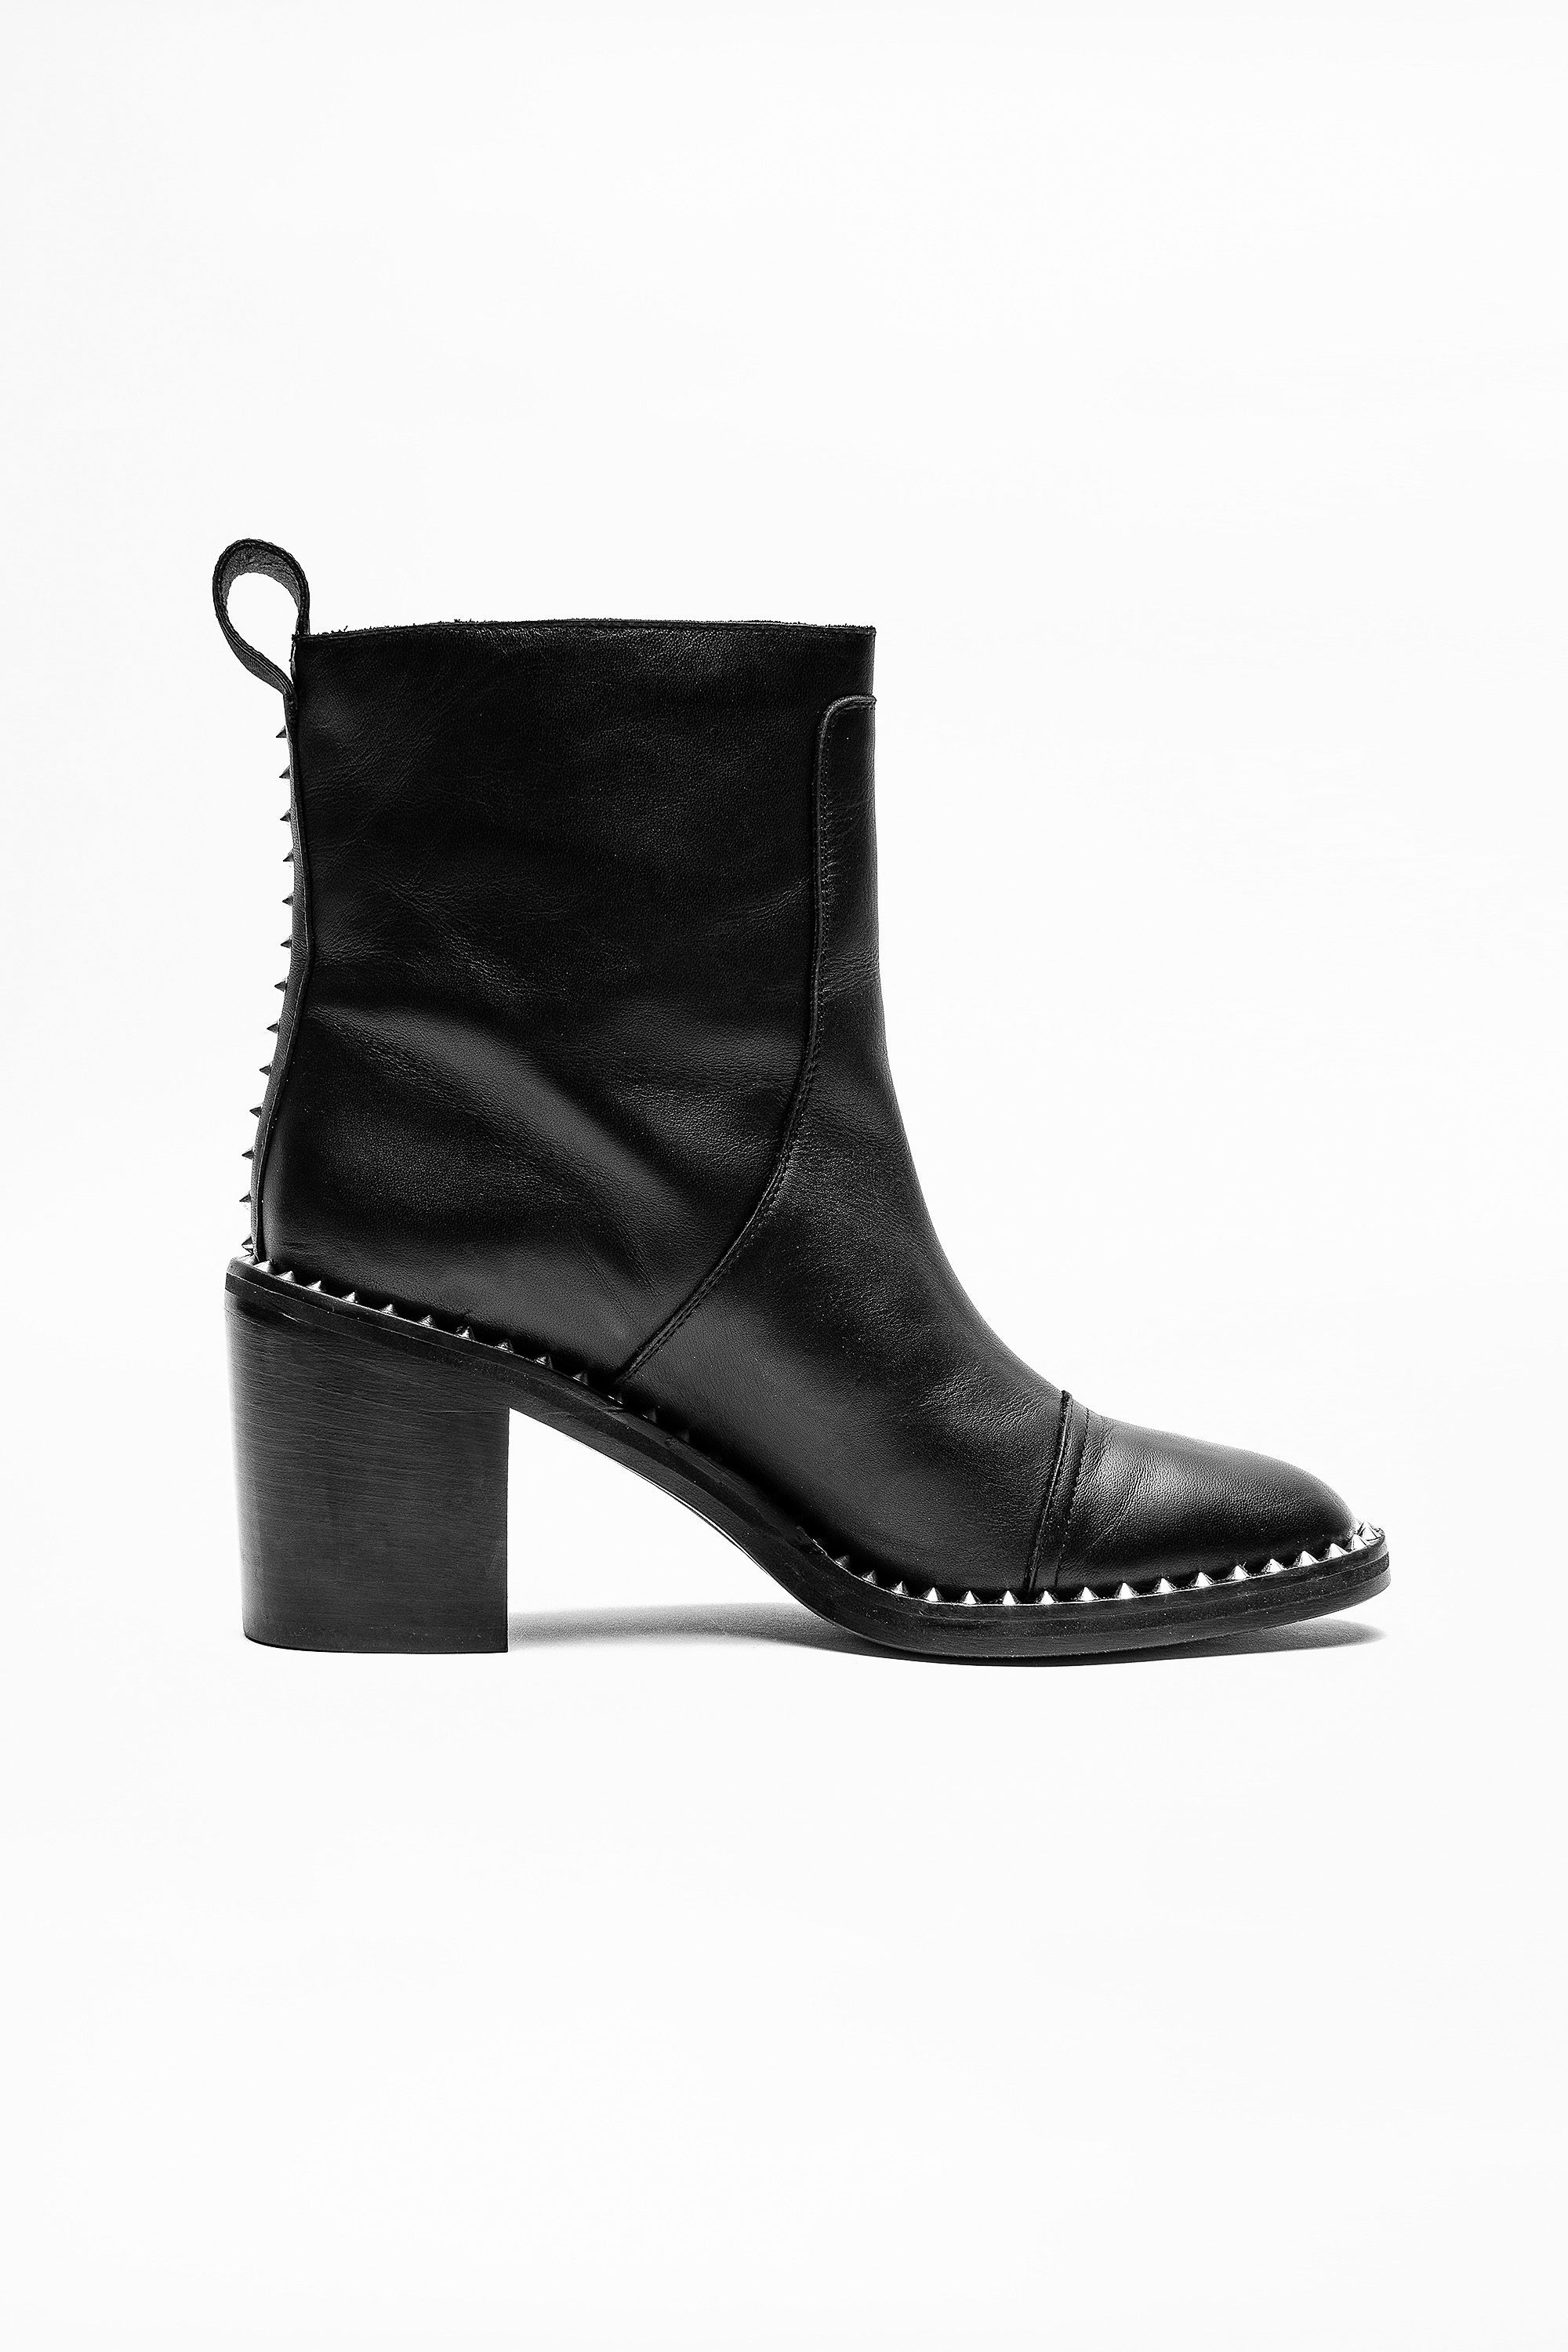 4f2ffdc7ae768 Crome Low Boots - boots women's | Zadig&Voltaire | zadig et voltaire ...